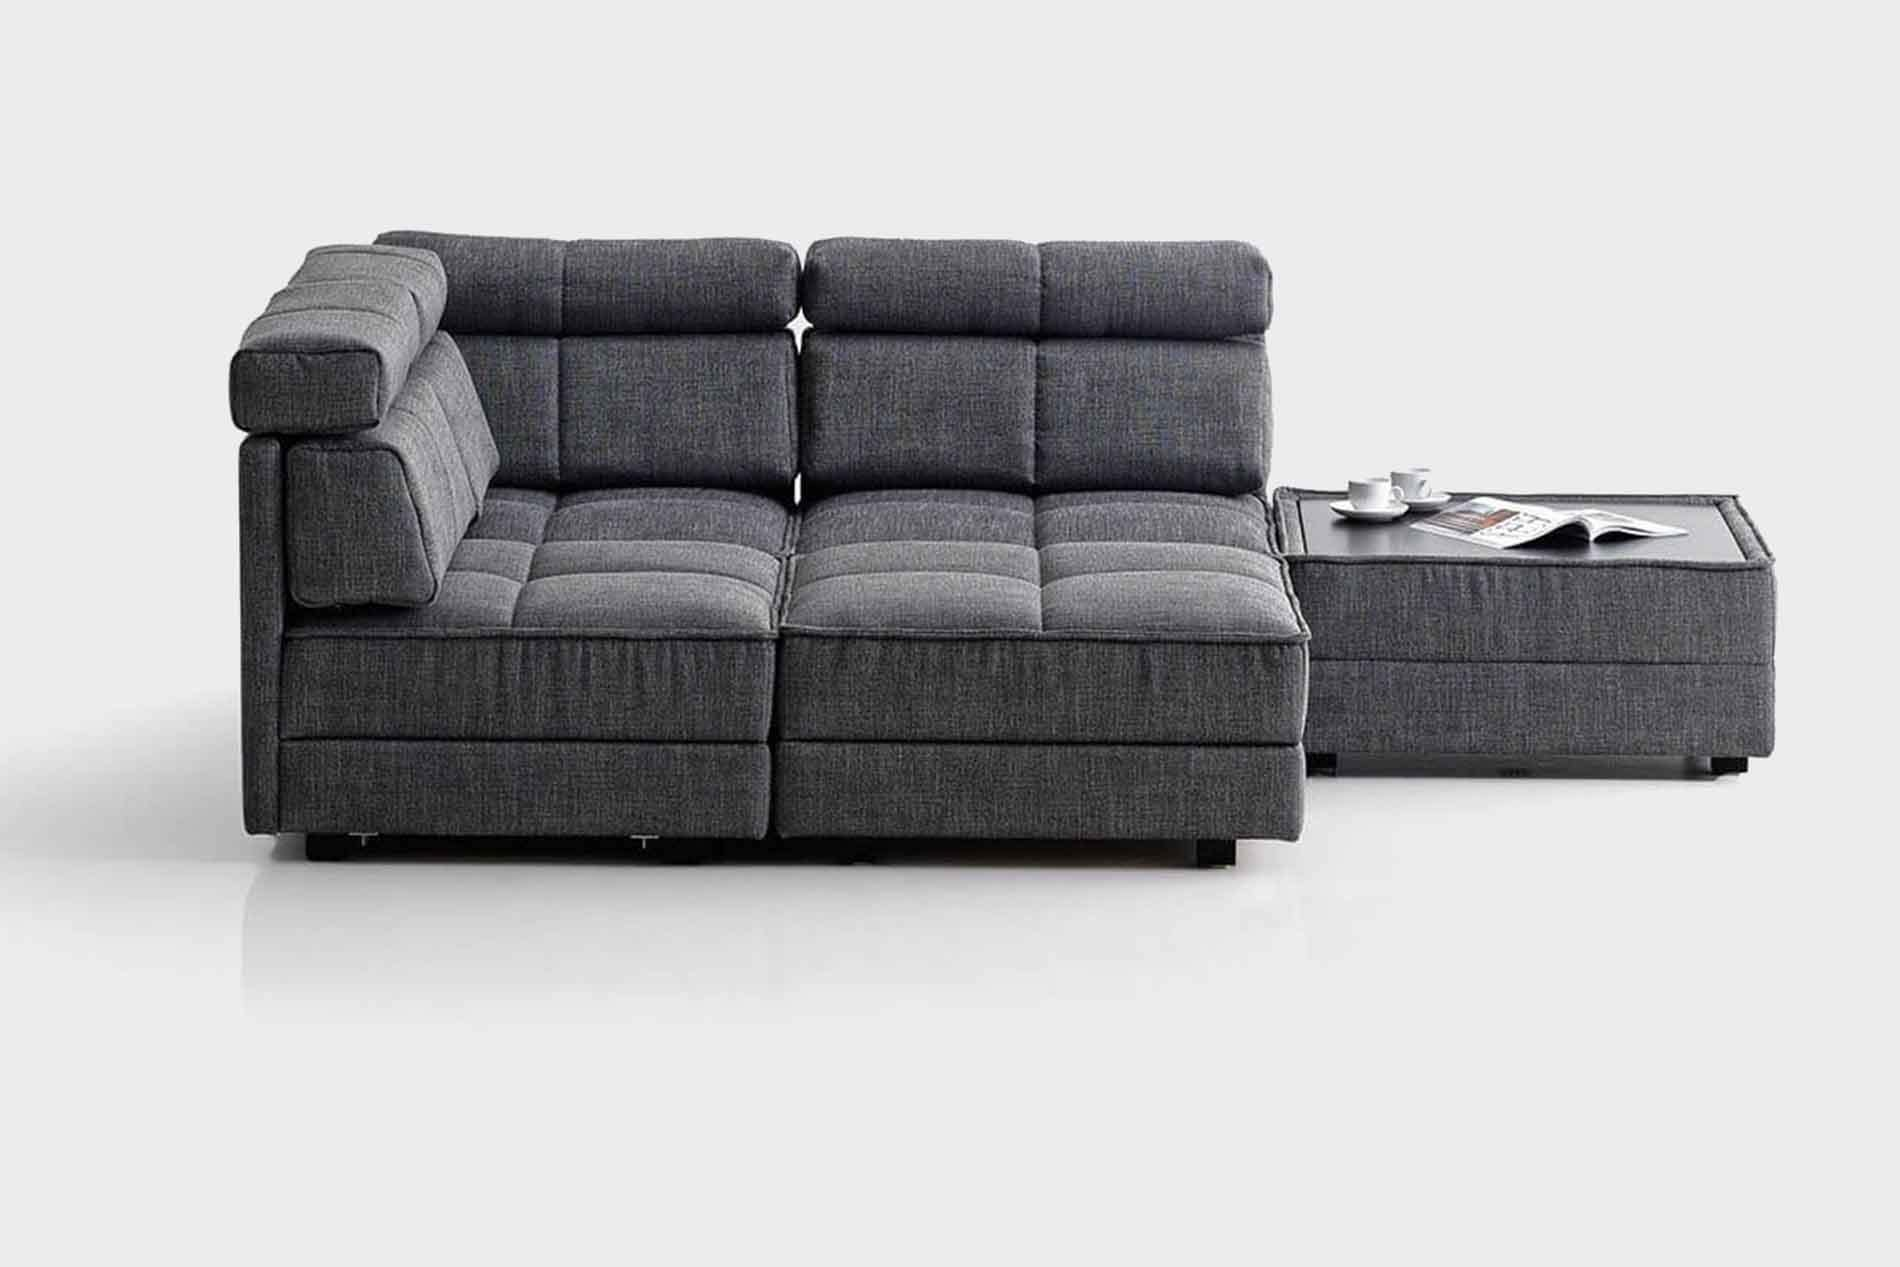 sofa oase von franz fertig. Black Bedroom Furniture Sets. Home Design Ideas